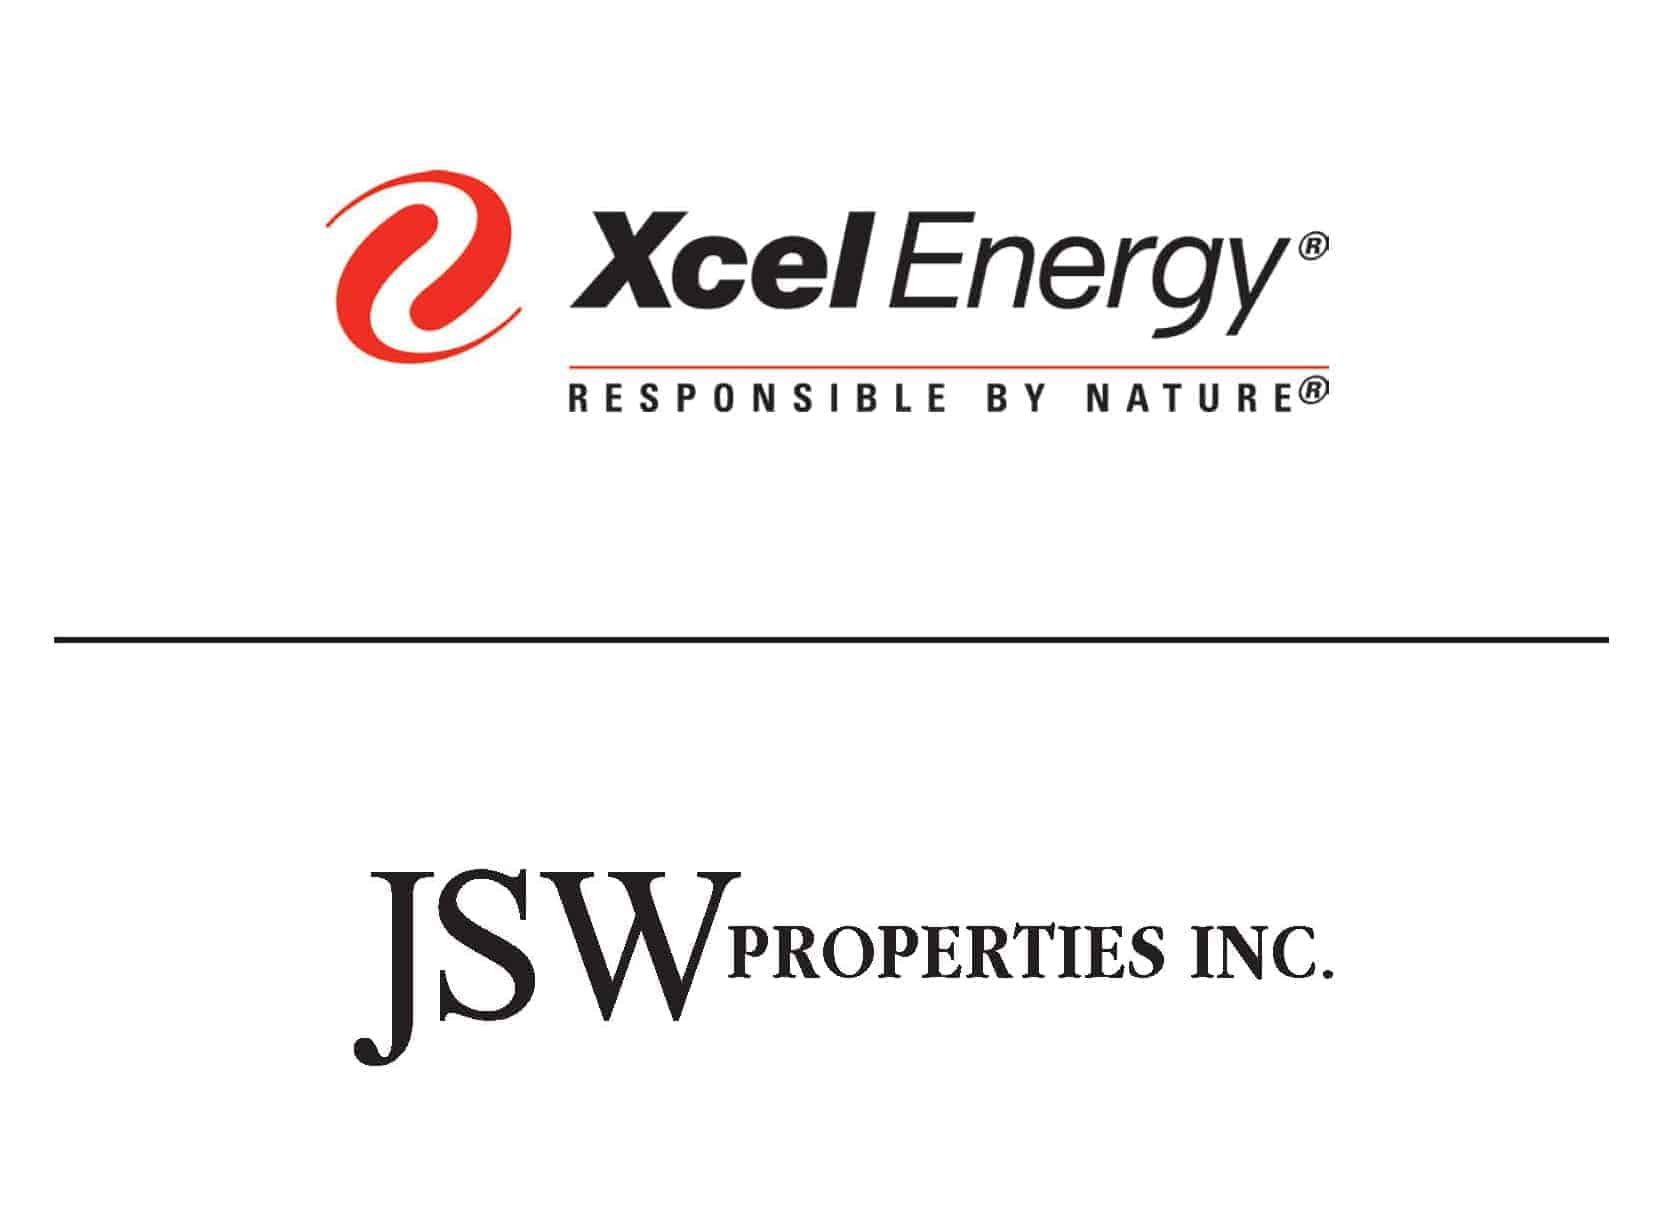 Xcel Energy and JSW Properties